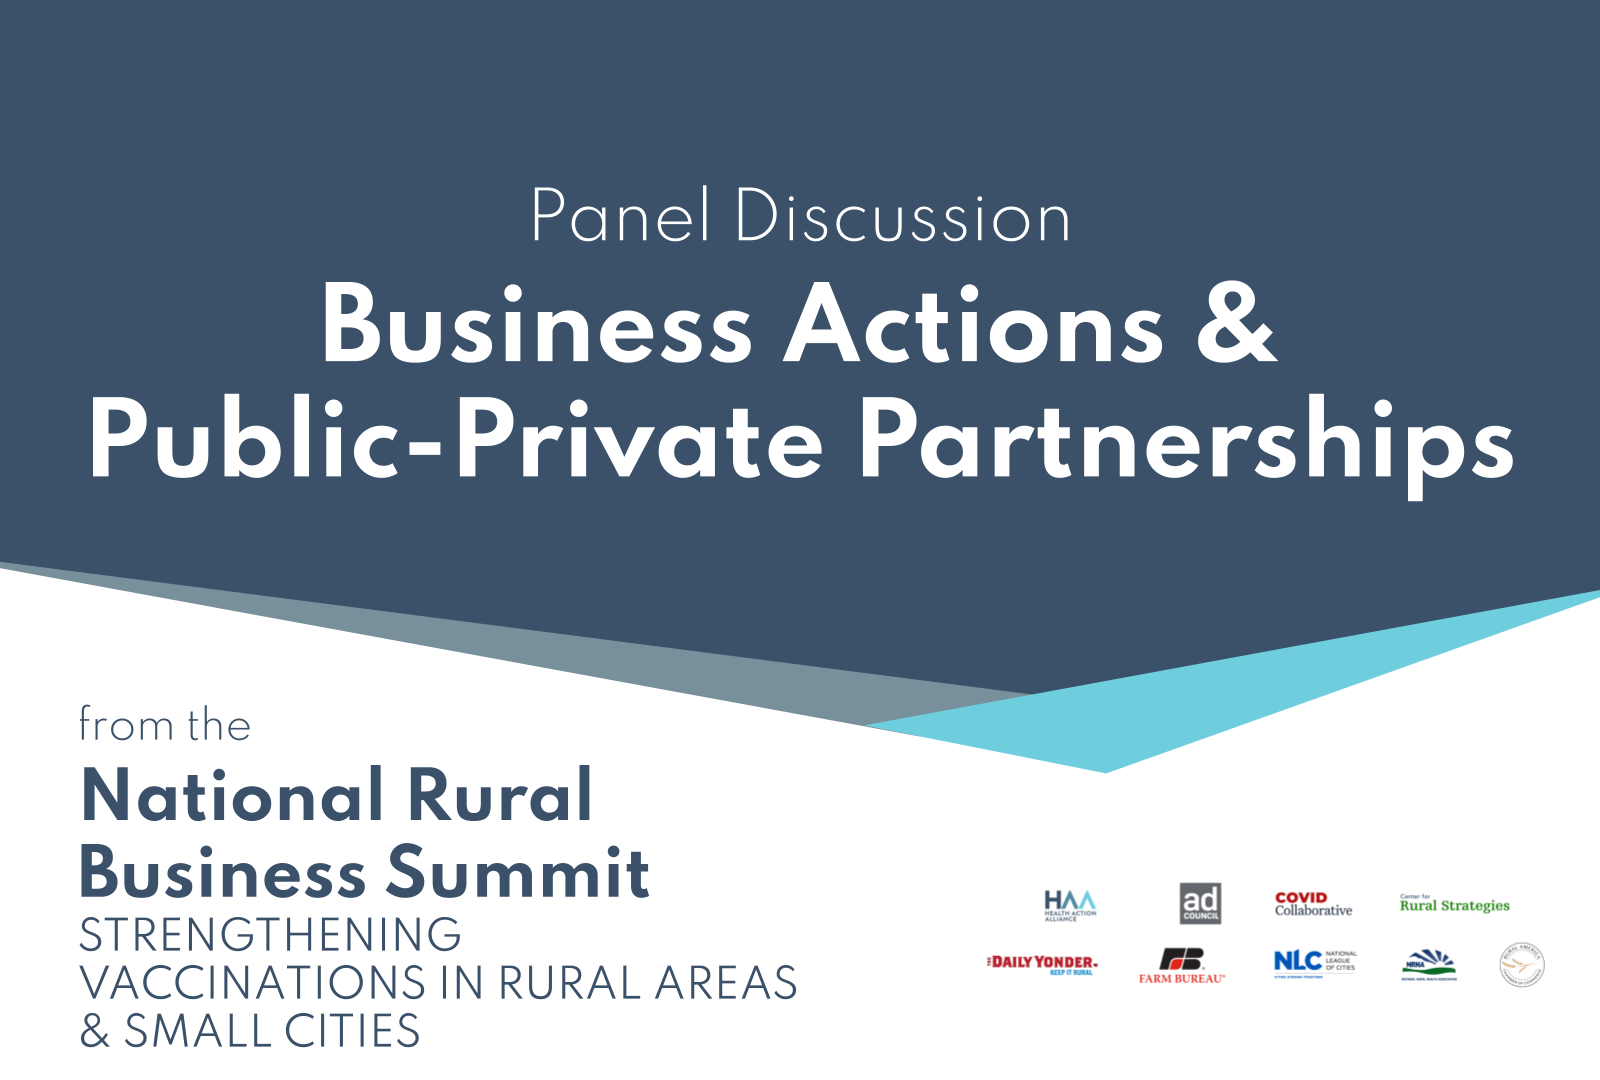 Business Actions & Public-Private Partnerships